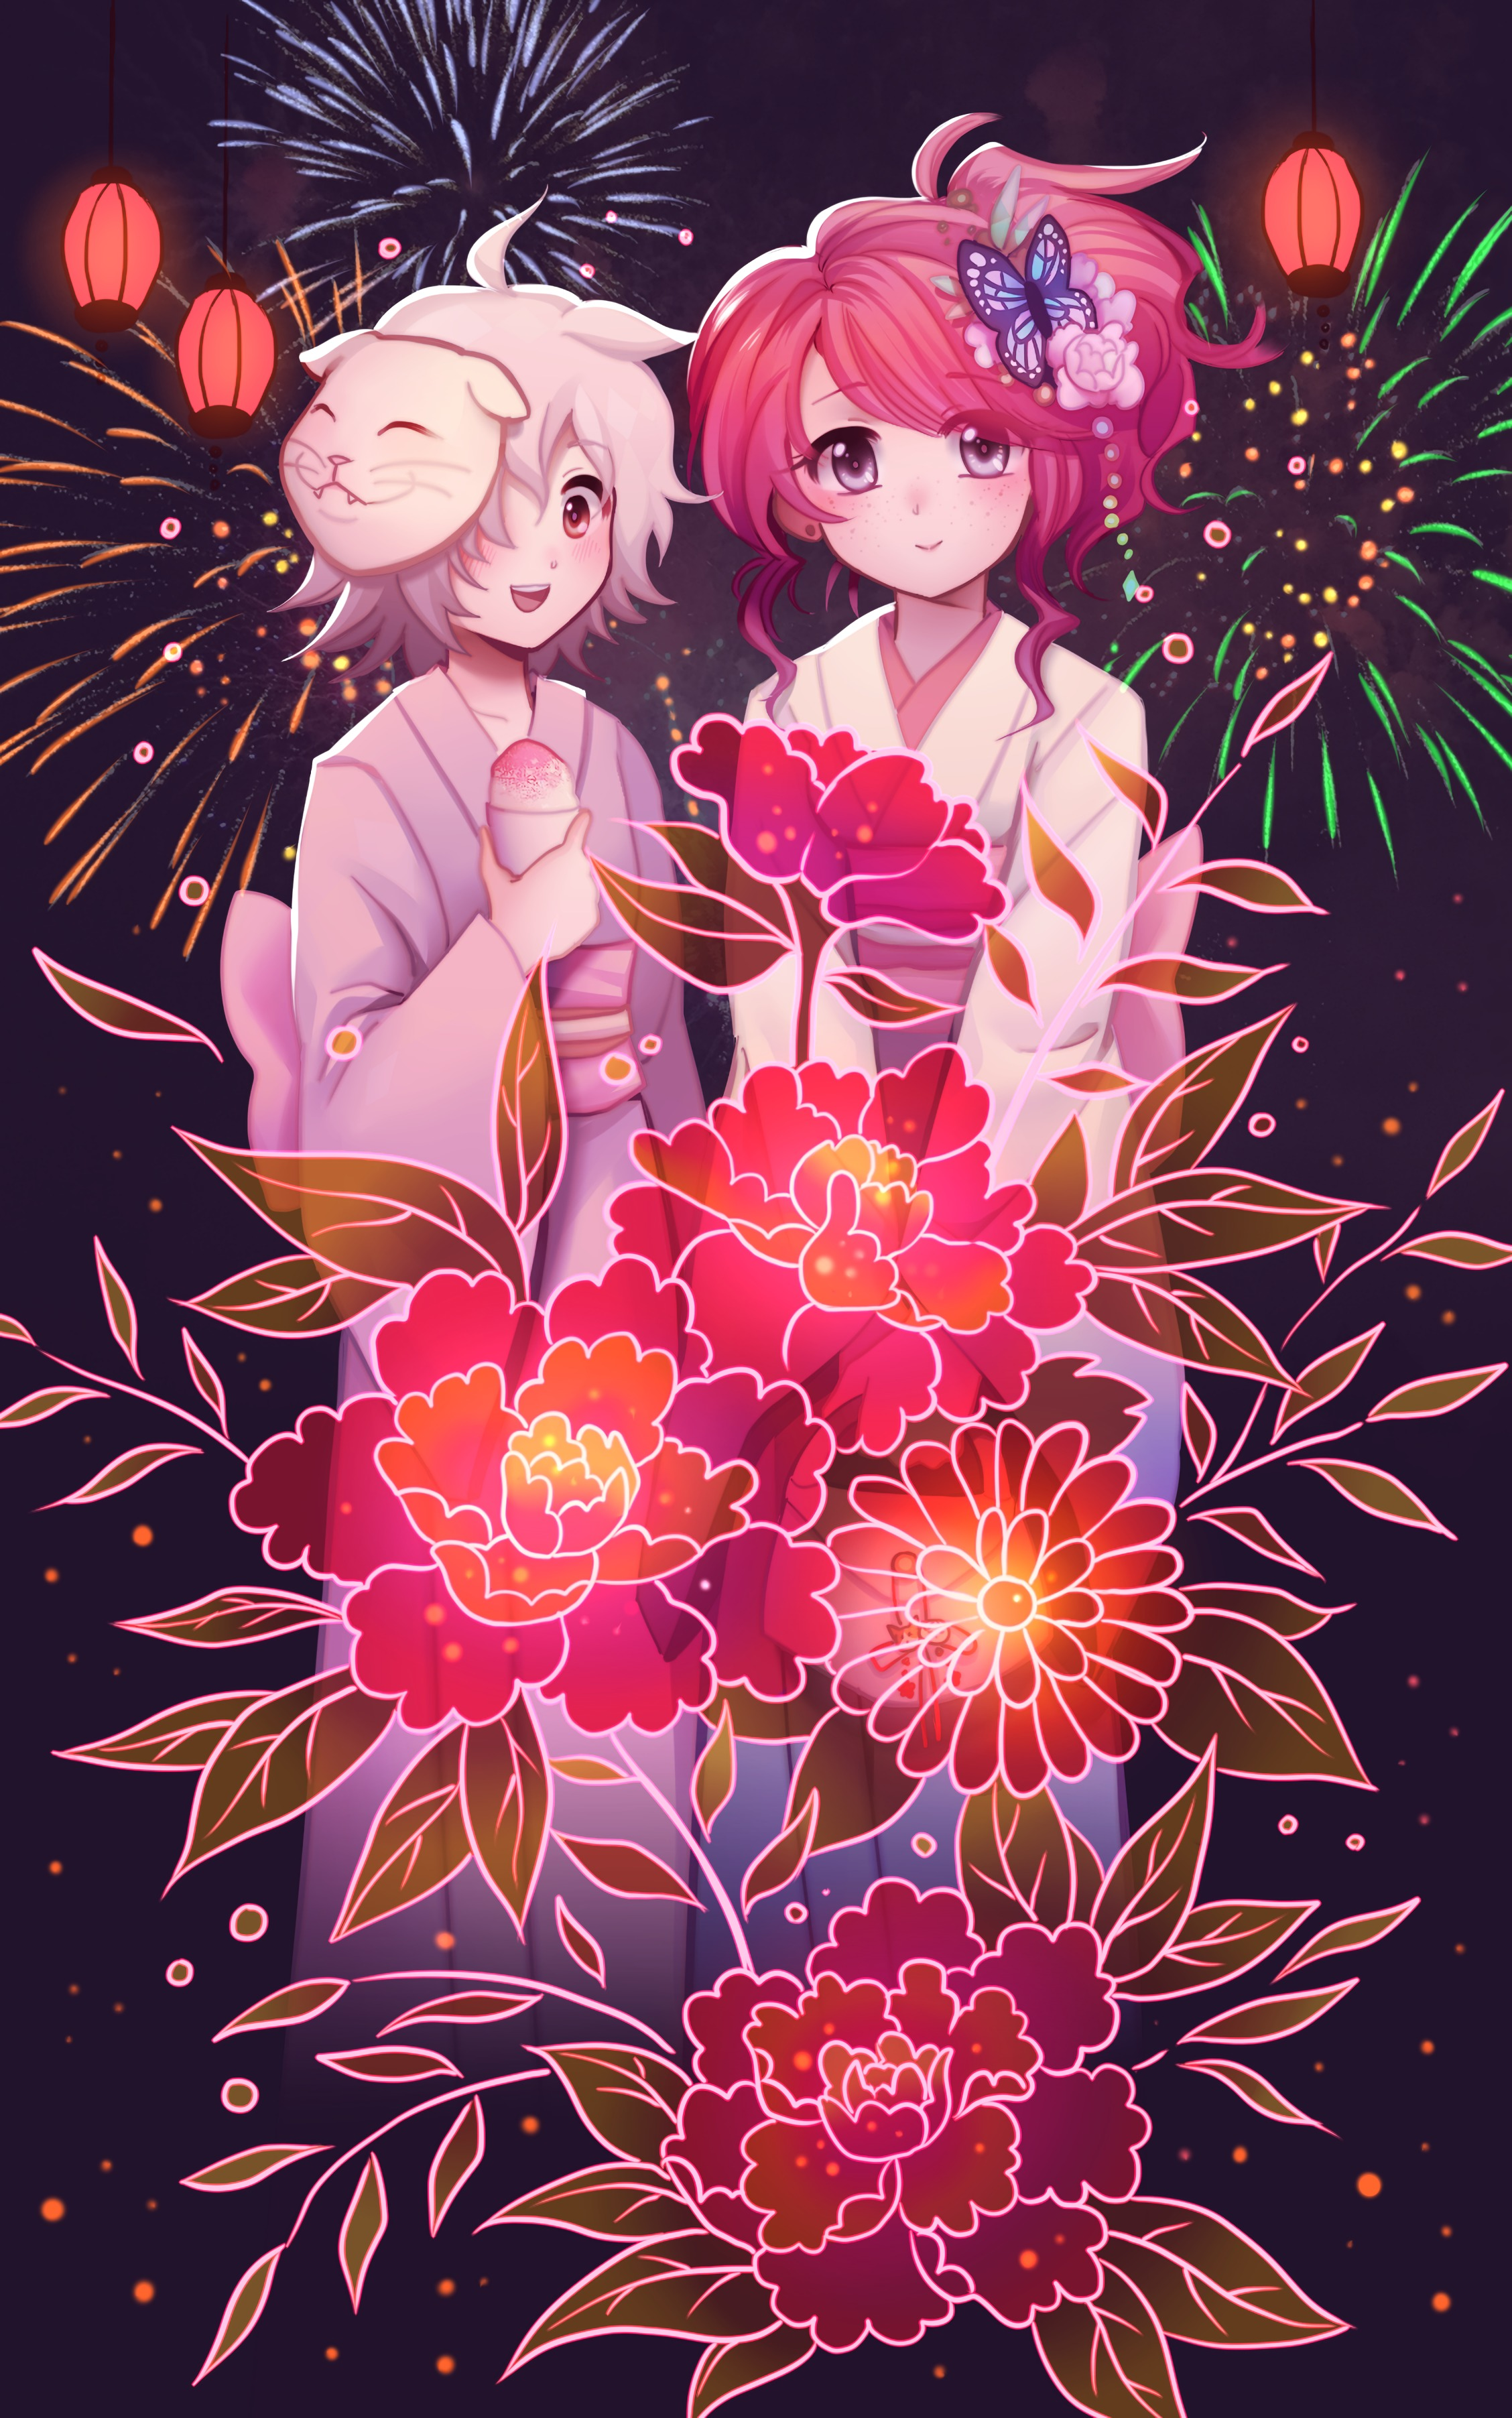 57364 download wallpaper Girls, Fireworks, Firework, Anime, Art, Flowers screensavers and pictures for free